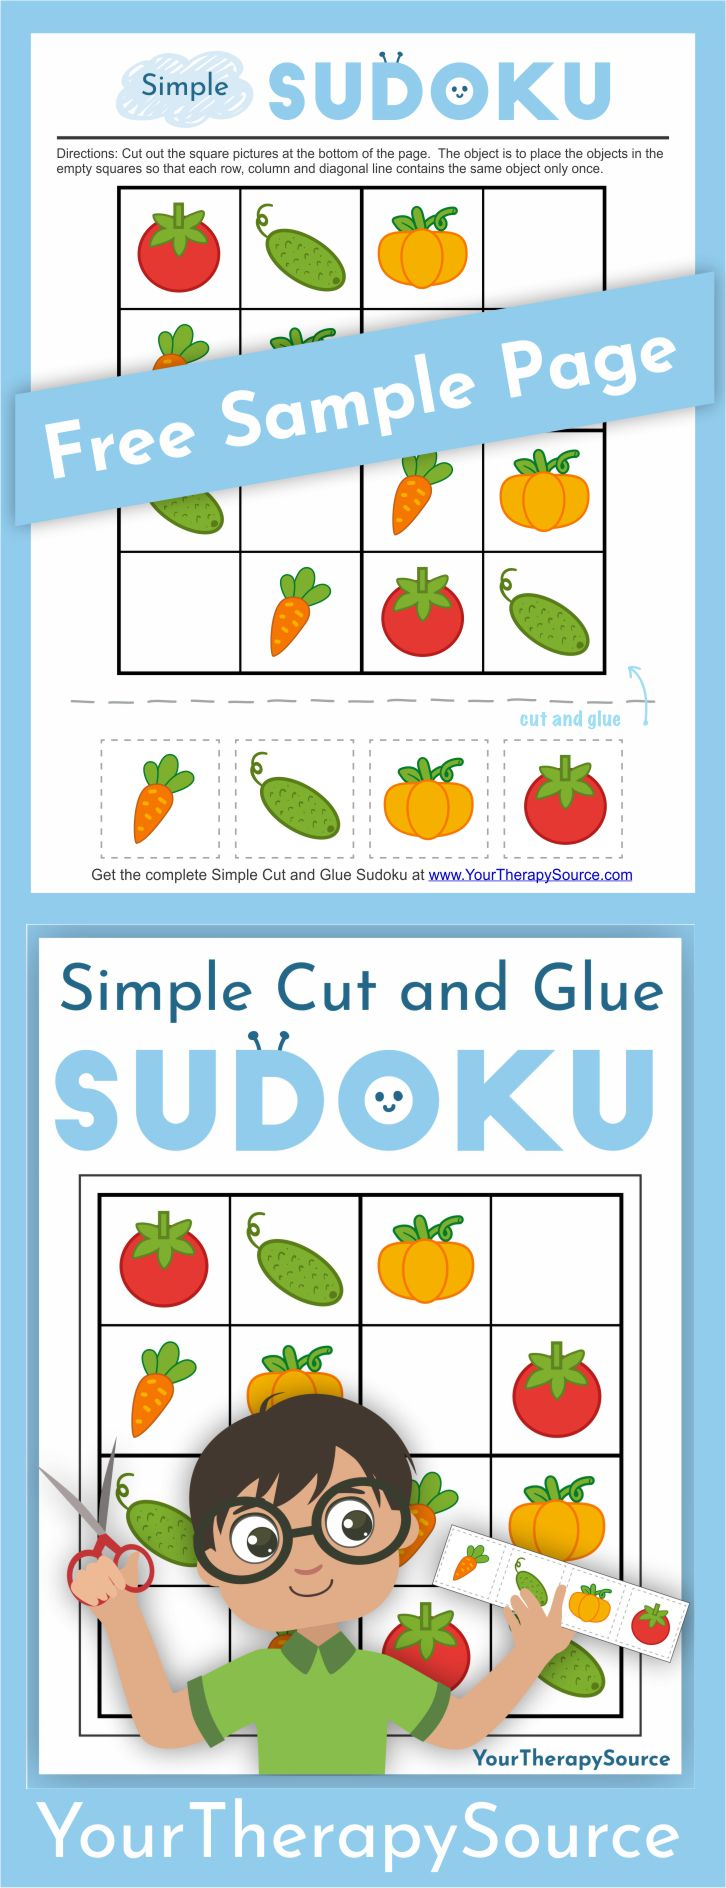 If you are looking for a one page printable to challenge fine motor and logic skills check out this freebie from the Simple Cut and Glue Sudoku download.